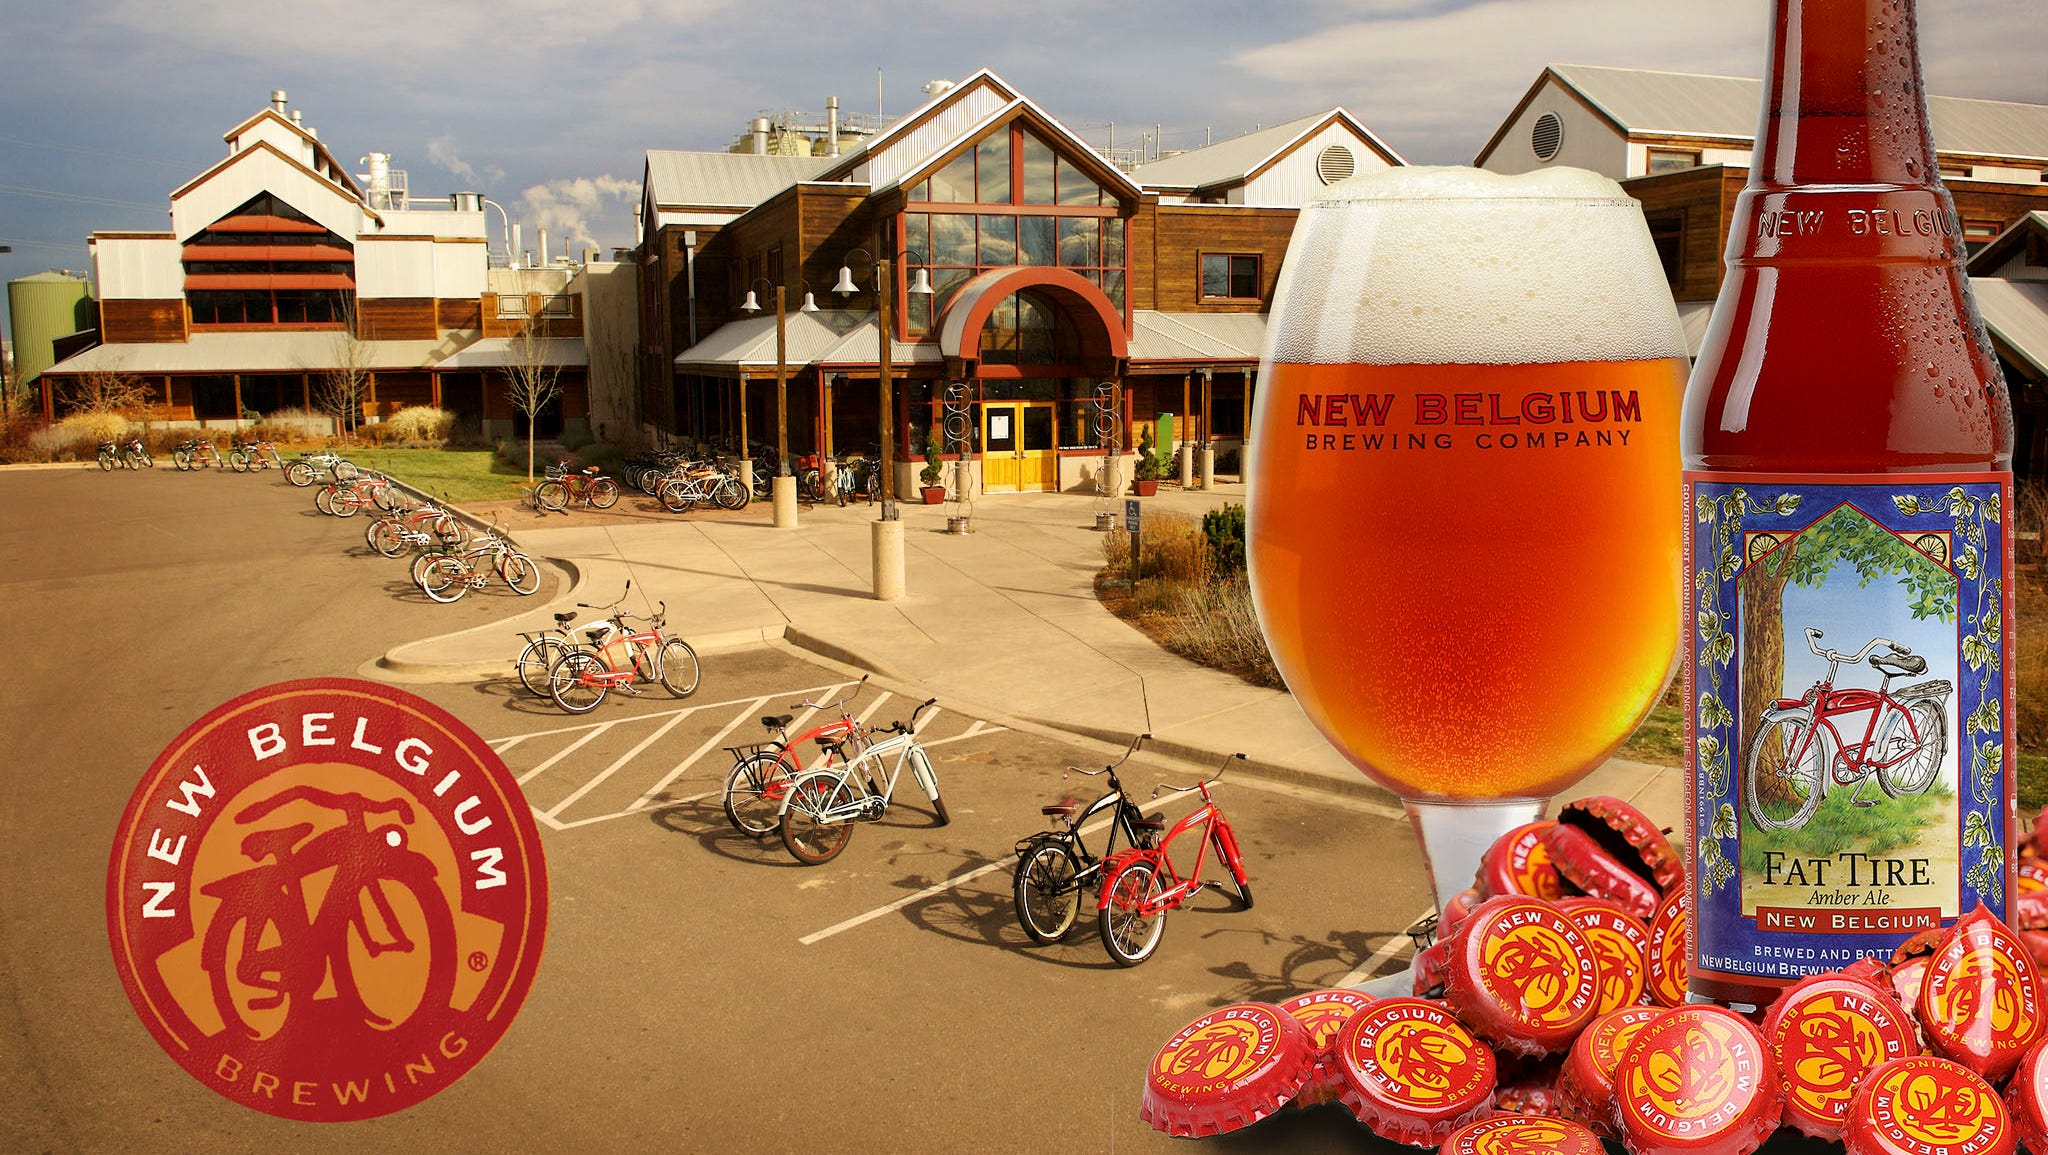 "New Belgium Brewing Company, Fort Collins, Colo.: Started in 1989 with the founder delivering beers on his bike, New Belgium quickly turned into a microbrewery and then surpassed the microbrewery mark to become one of the most respected and loved full breweries in the country. They now offer free tours of their facility, which produces ""Fat Tire,"" the very brew that was transported on bikes more than 20 years ago. While Fat Tire is the solid flagship beer of New Belgium, the brewery still takes risks with its seasonals. ""New Belgium has a huge lineup of beers and [is] best known for their Fat Tire Amber Ale,"" says Dave Butler, Colorado beer blogger for Fermentedly Challenged. ""In particular I love their Lips of Faith series of beers, and one of my favorites there is their La Folie Sour Brown Ale."" New Belgium takes the Colorado lifestyle and transposes it to a larger audience, and many agree that the brewery doesn't just make great craft beer — it makes an eco-friendly and community-friendly impact. ""When it comes to the melding of craft beer, the arts, lifestyle, eco-consciousness, and community, this Fort Collins, Colo., brewery has few peers,"" says Tom Bobak of American Craft Beer. ""I like what New Belgium 'does' almost as much as I enjoy what they brew."""